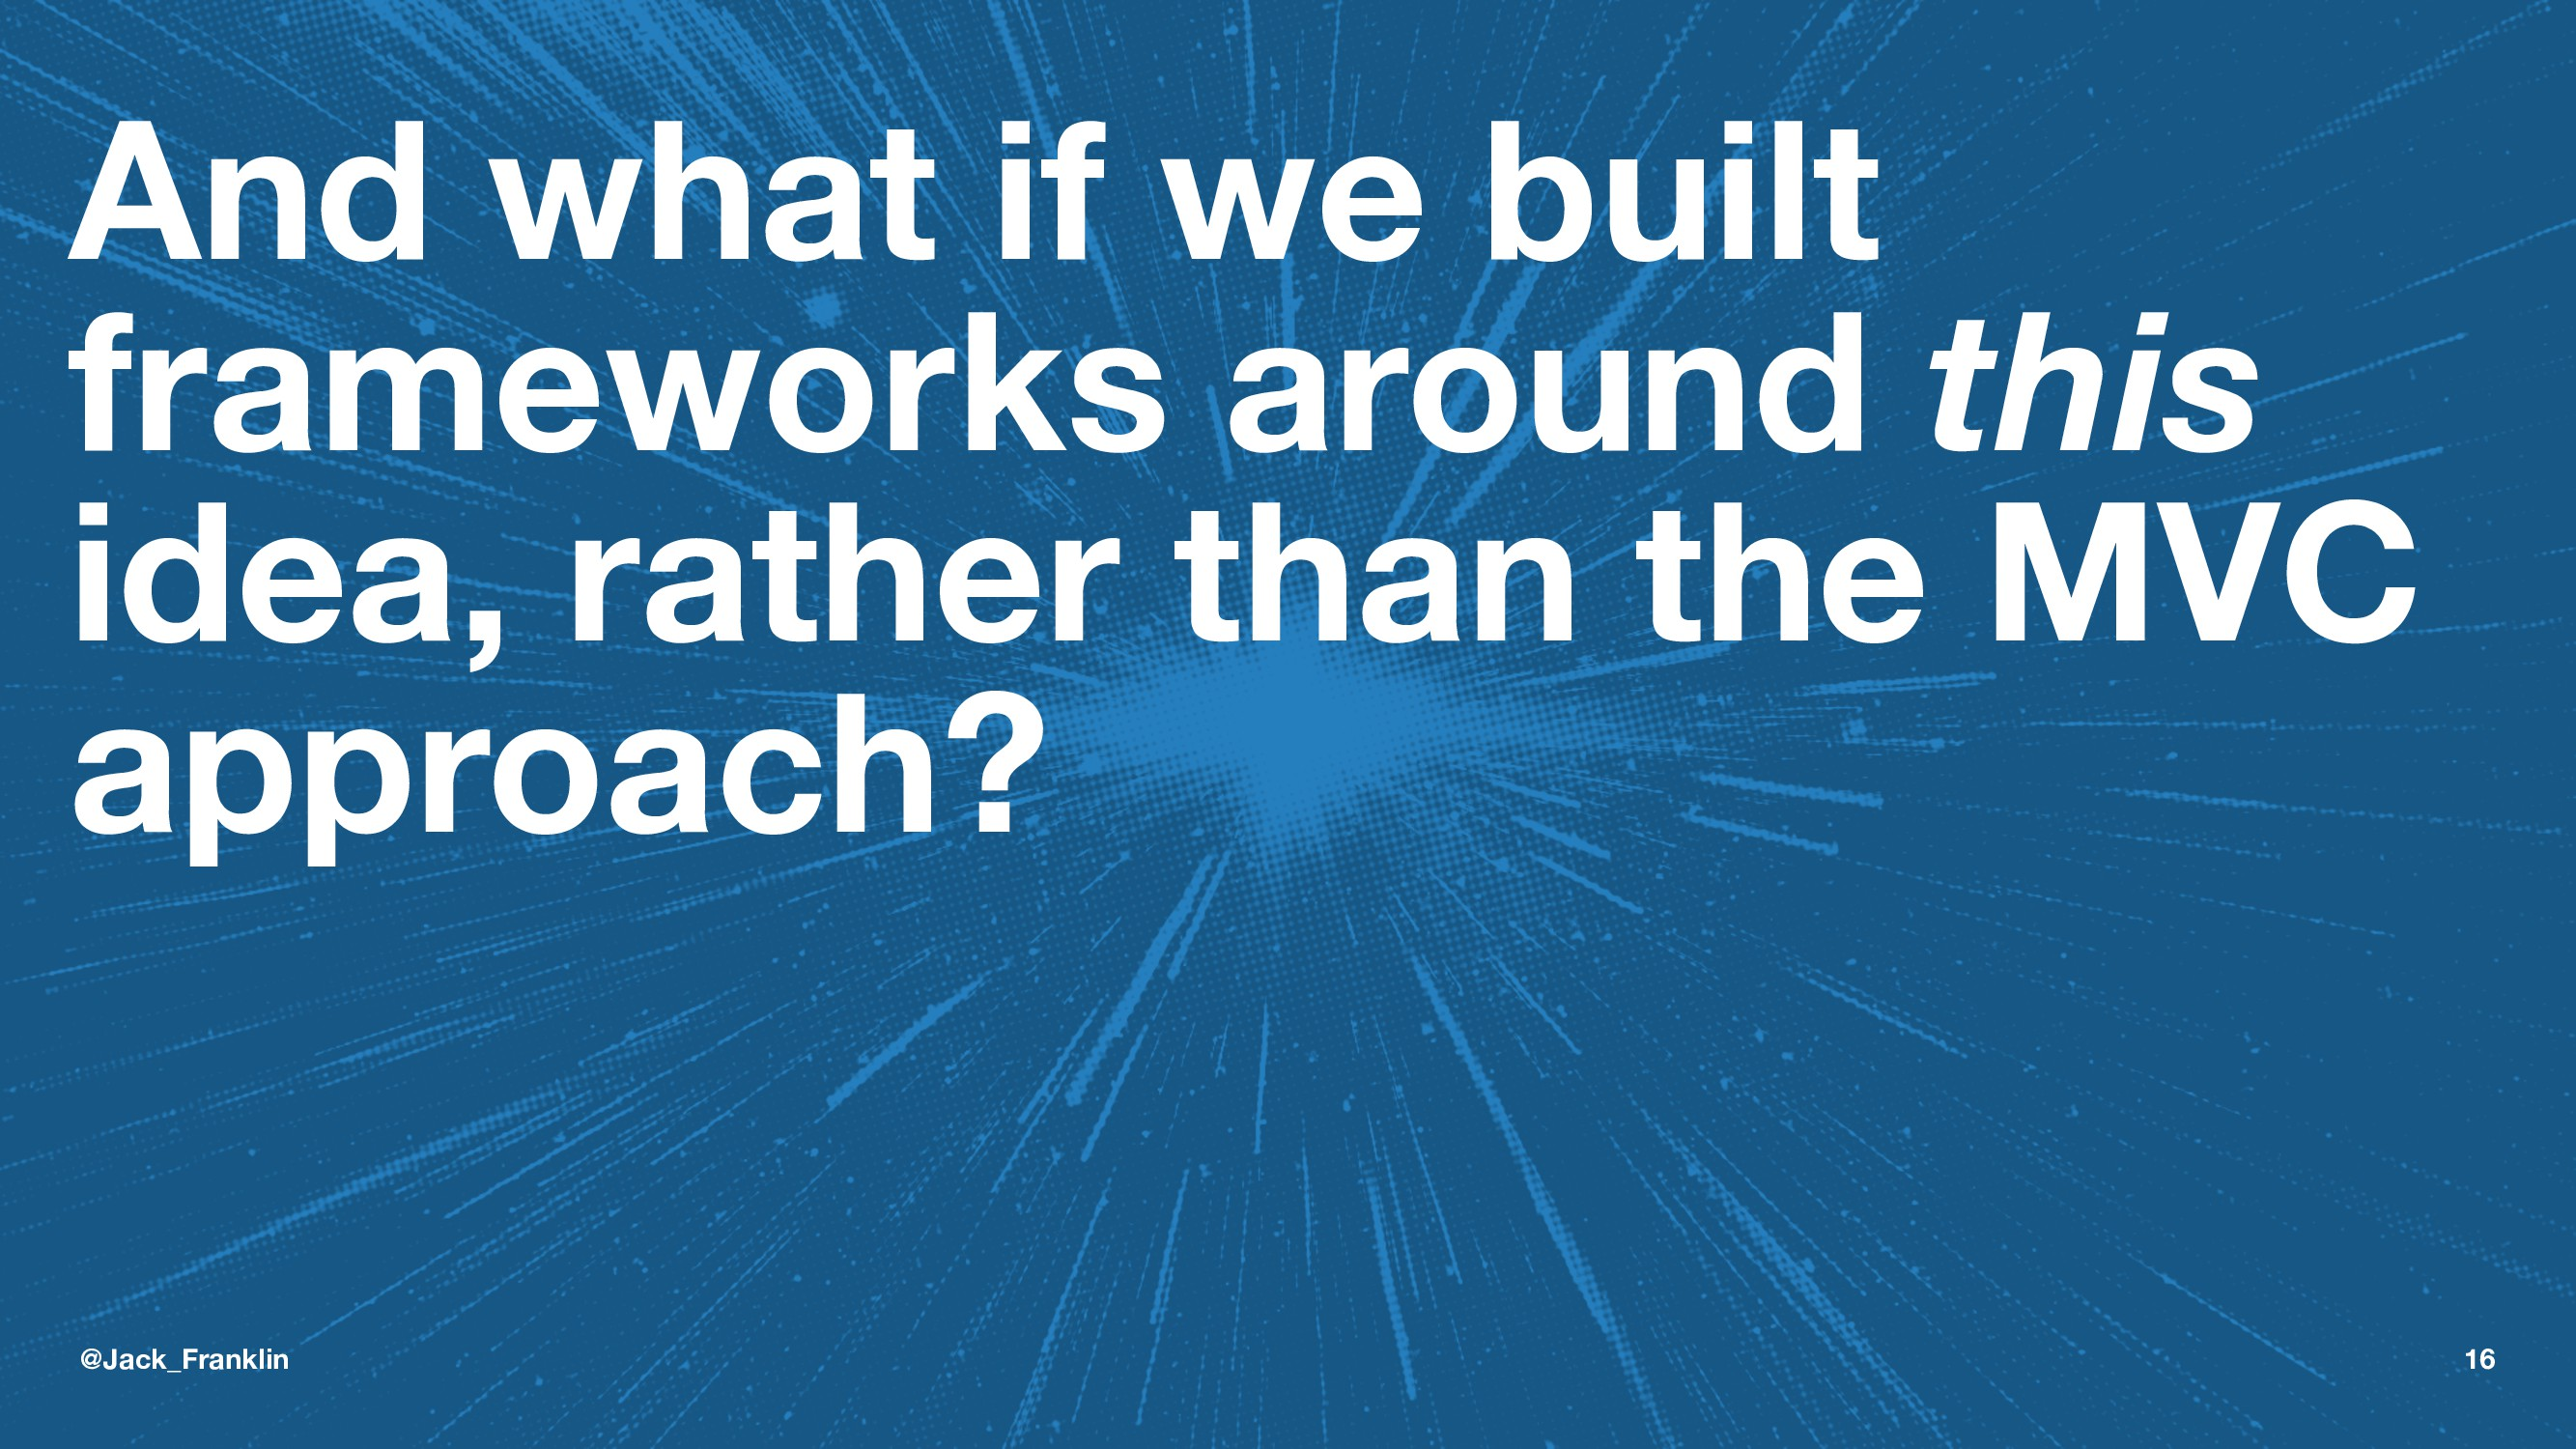 And what if we built frameworks around this ide...